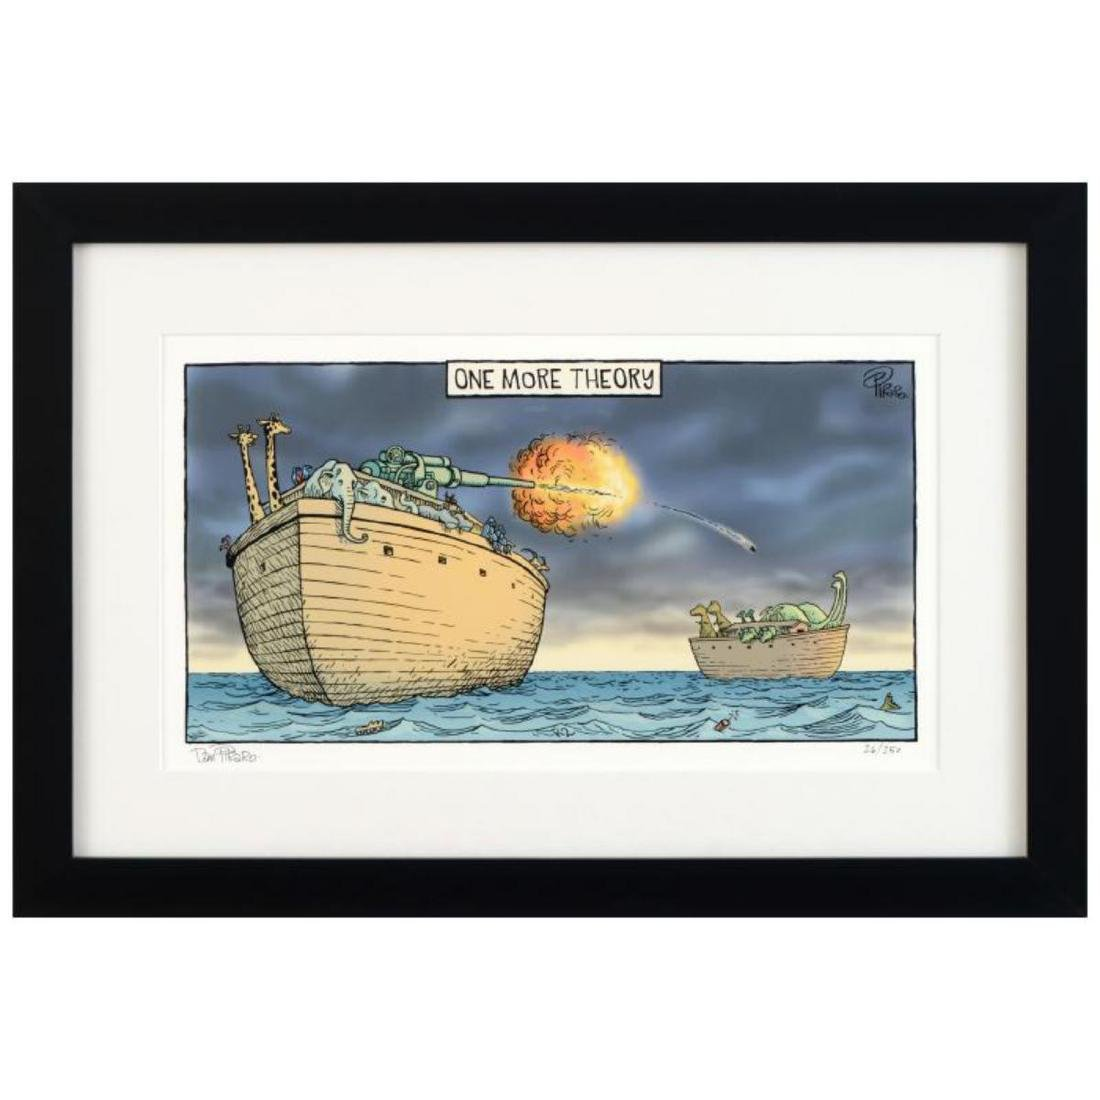 "Bizarro! ""One More Theory"" is a Framed Limited Edition"